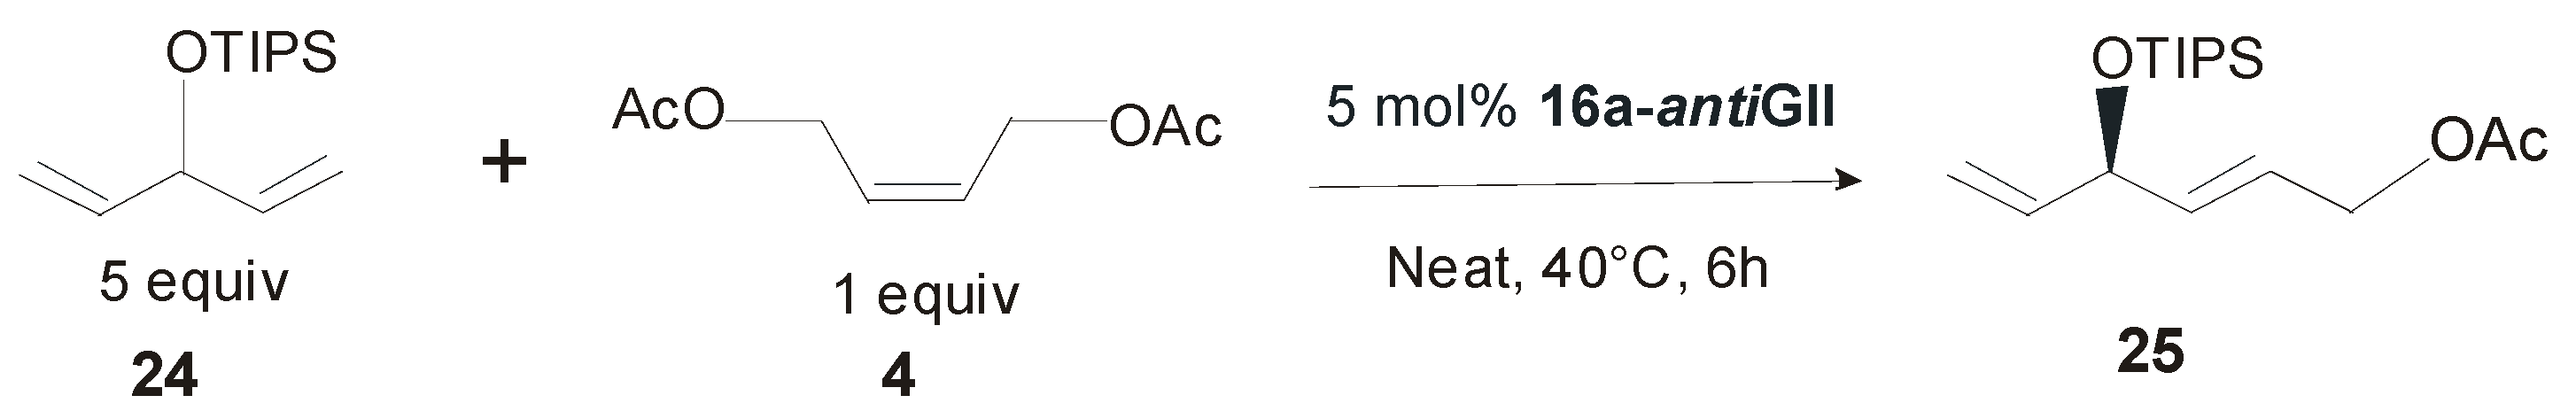 Ruthenium catalyzed olefin metathesis